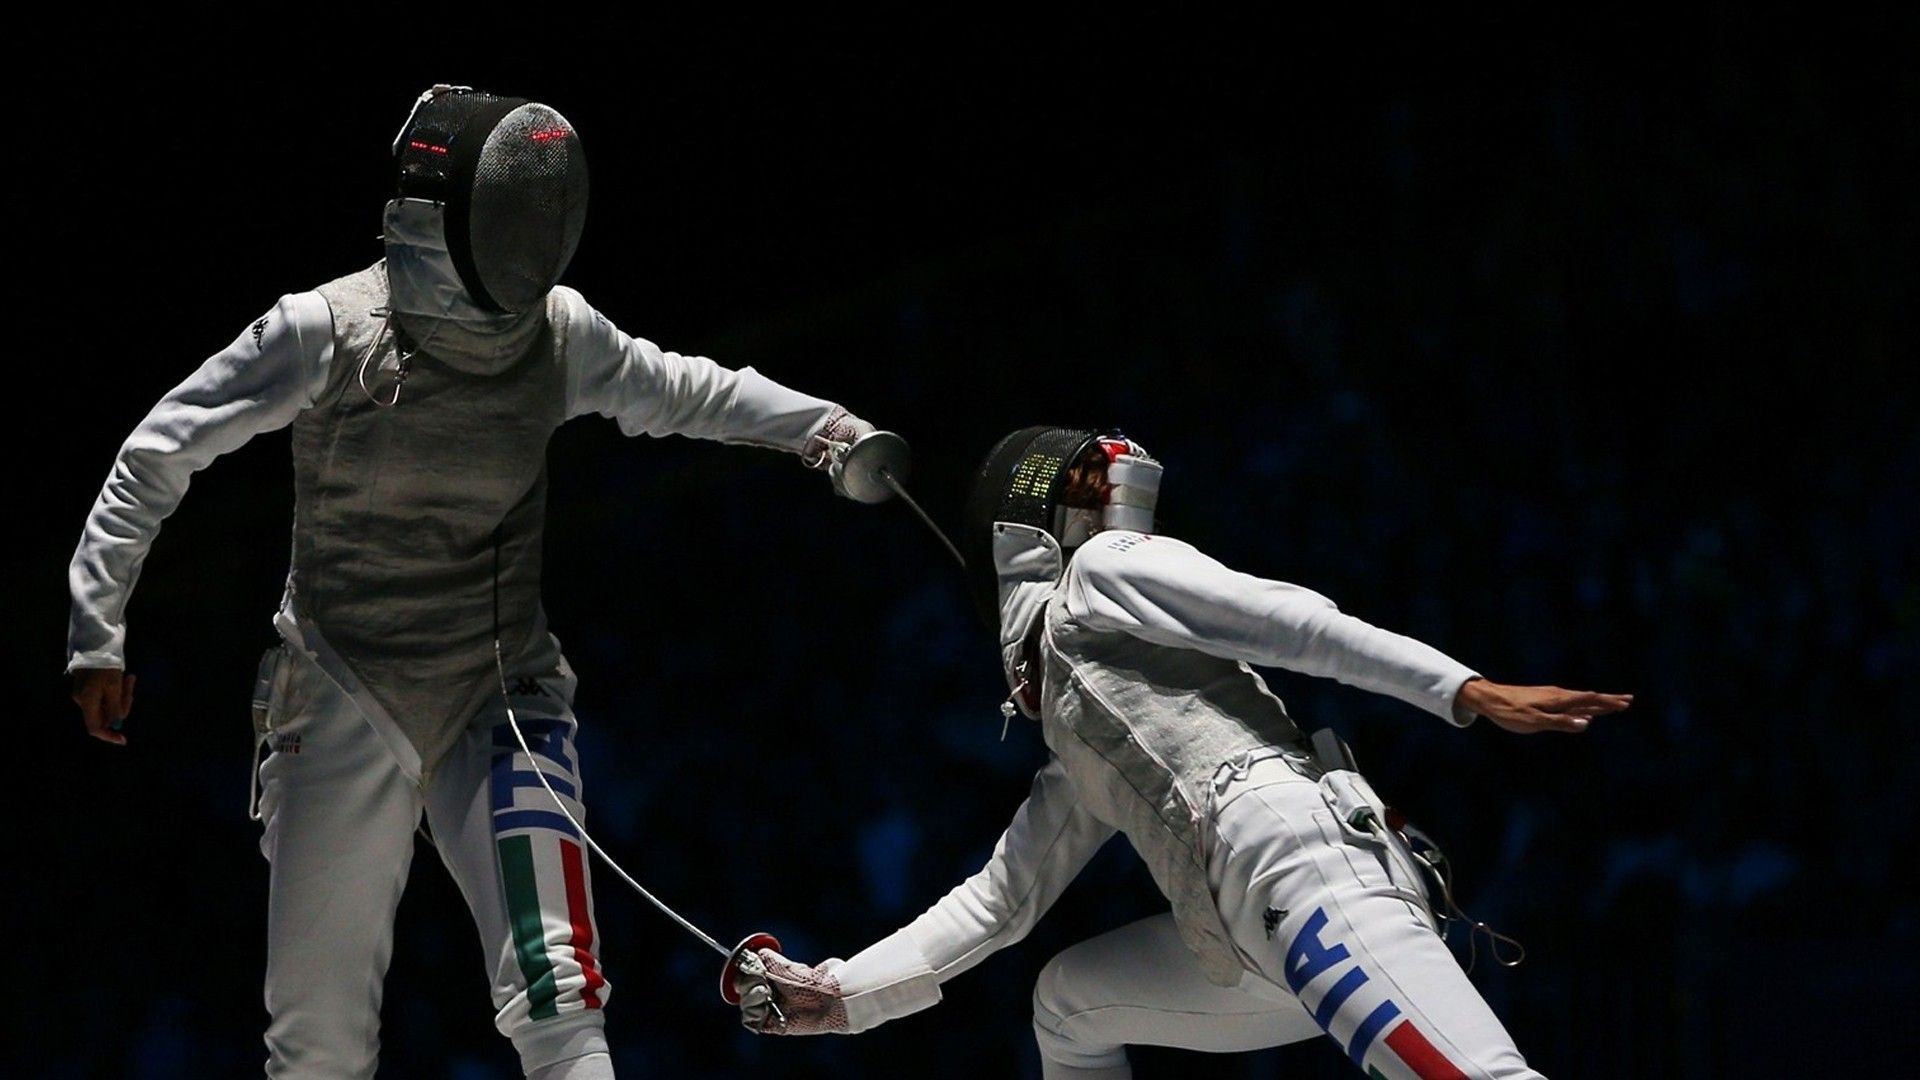 Sports Fight Fencing Olympics 2012 Sports Fights Fencing Sport Rowing Crew